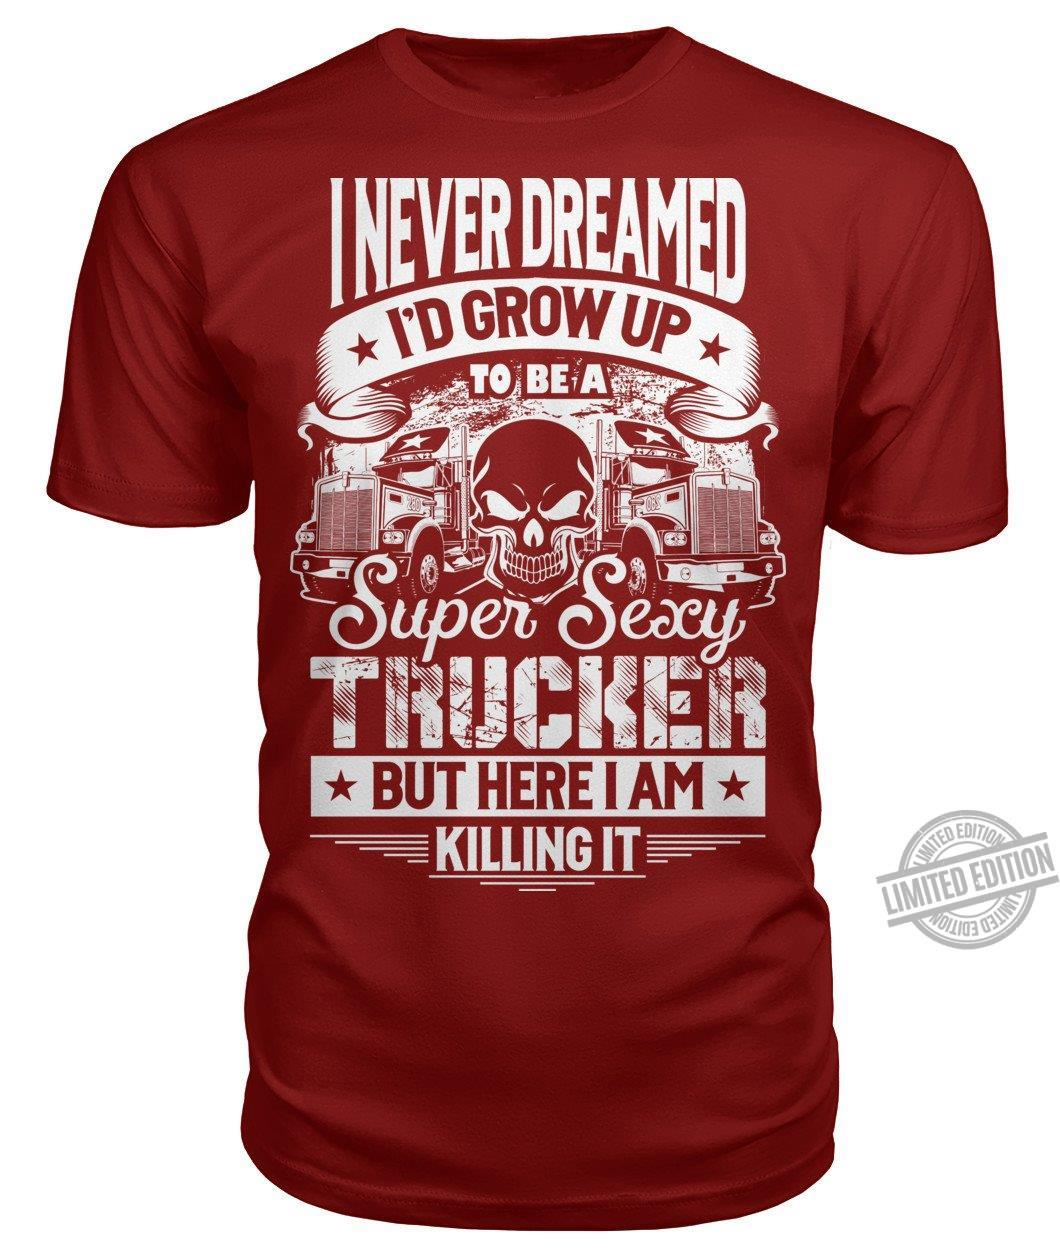 I Never Dreamed I'd Grow Up To Be A Super Sexy Trucker But Here I Am Killing It Shirt